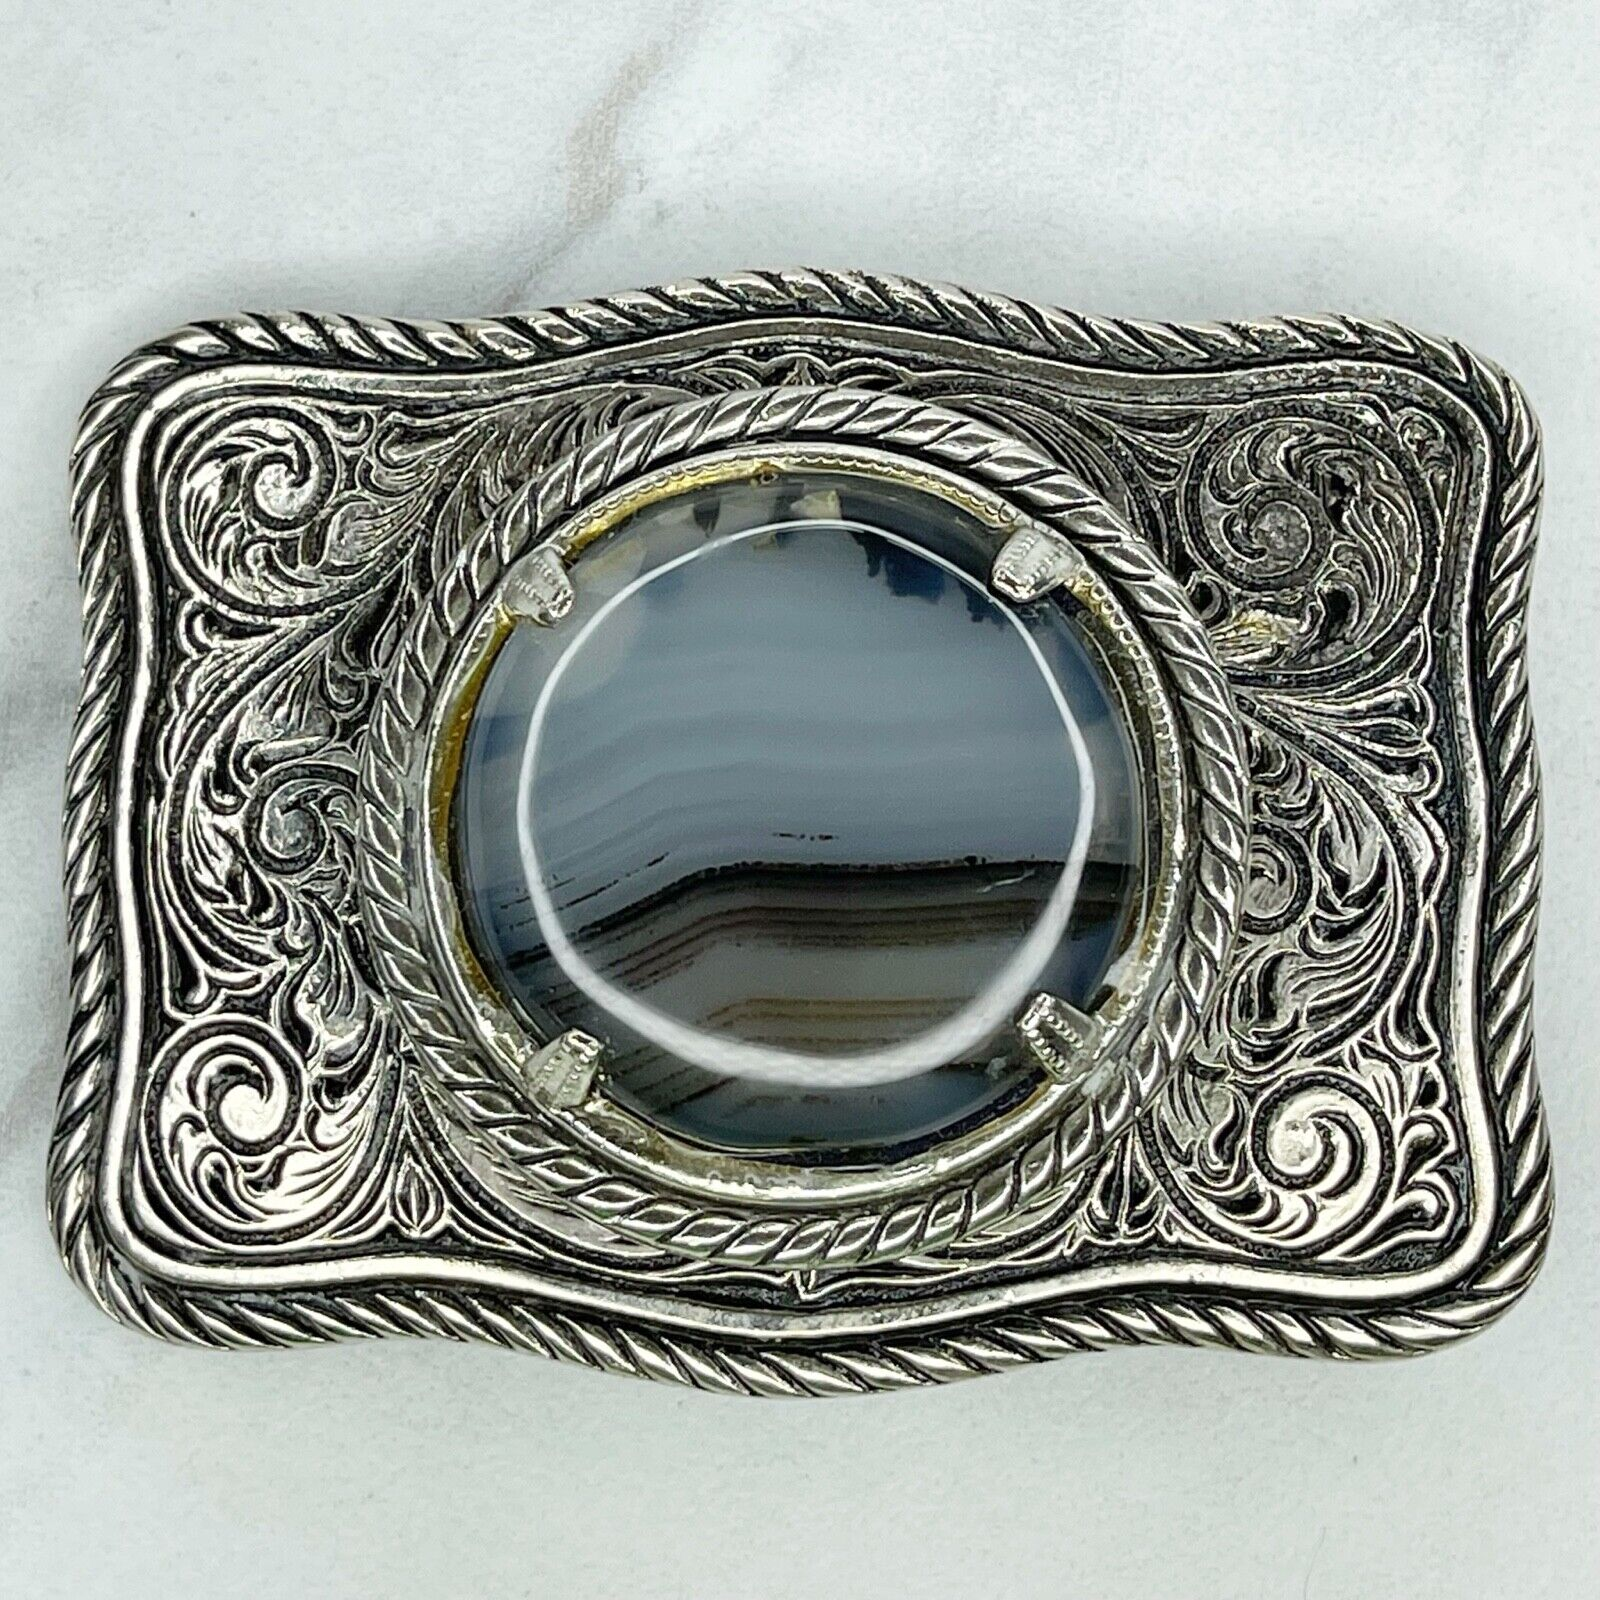 Silver Tone Marbled Cabochon Scroll Engraved Belt Buckle Fits belt up to 1.75